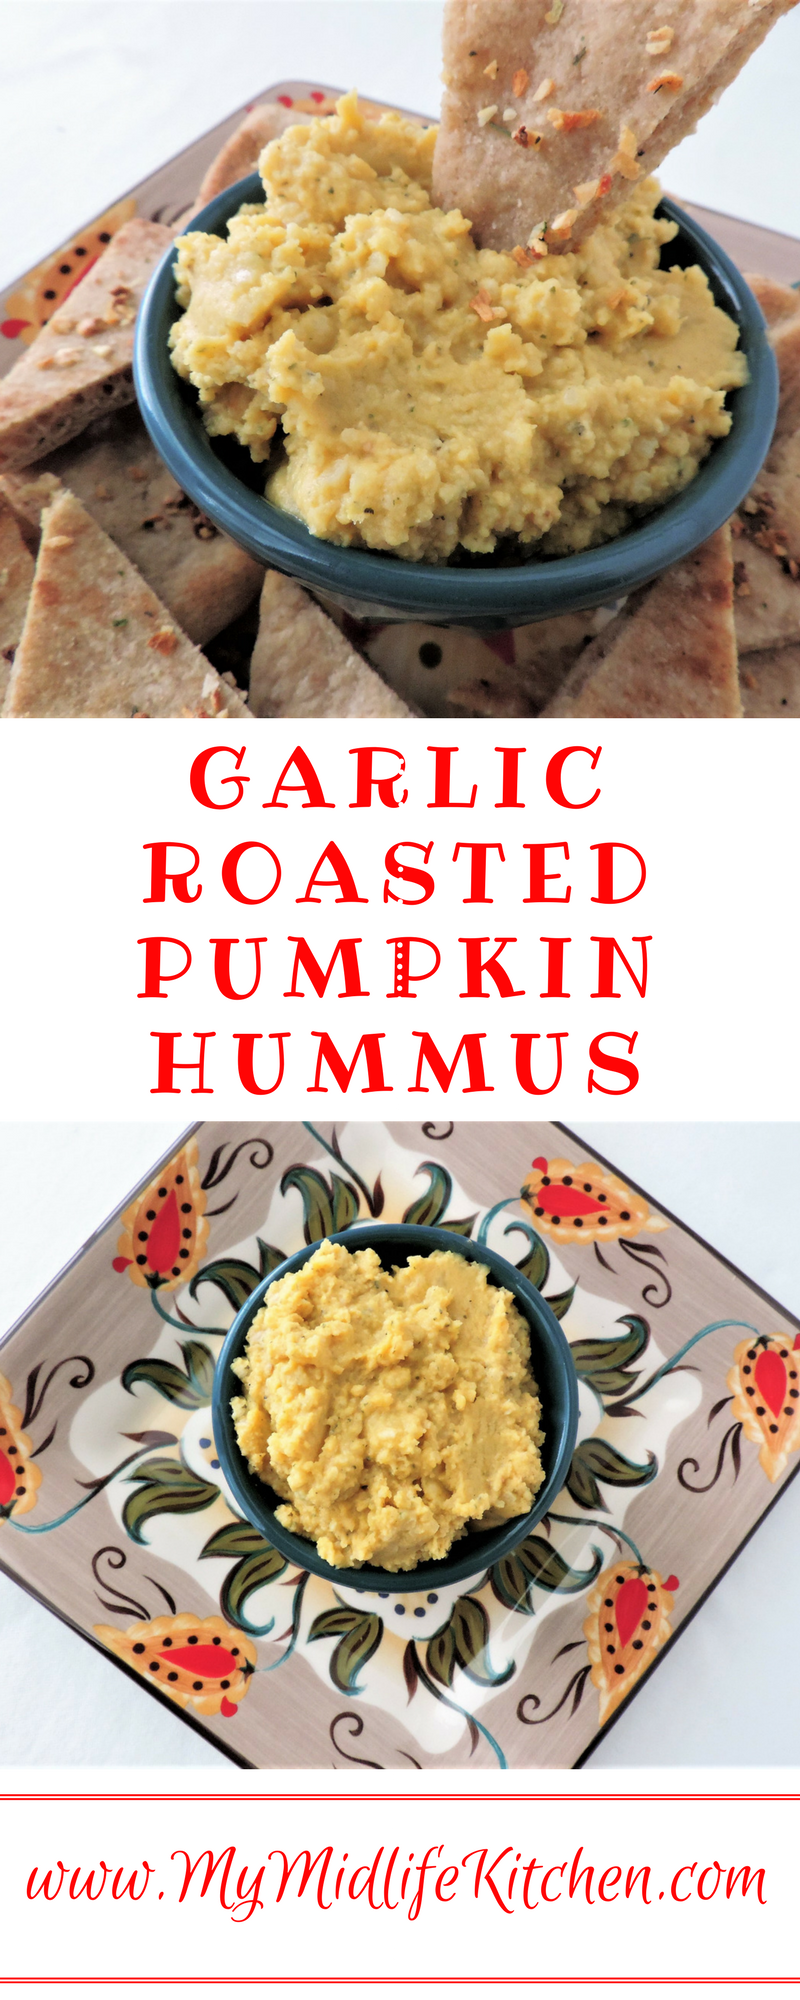 Garlic-Roasted-Pumpkin-Hummus